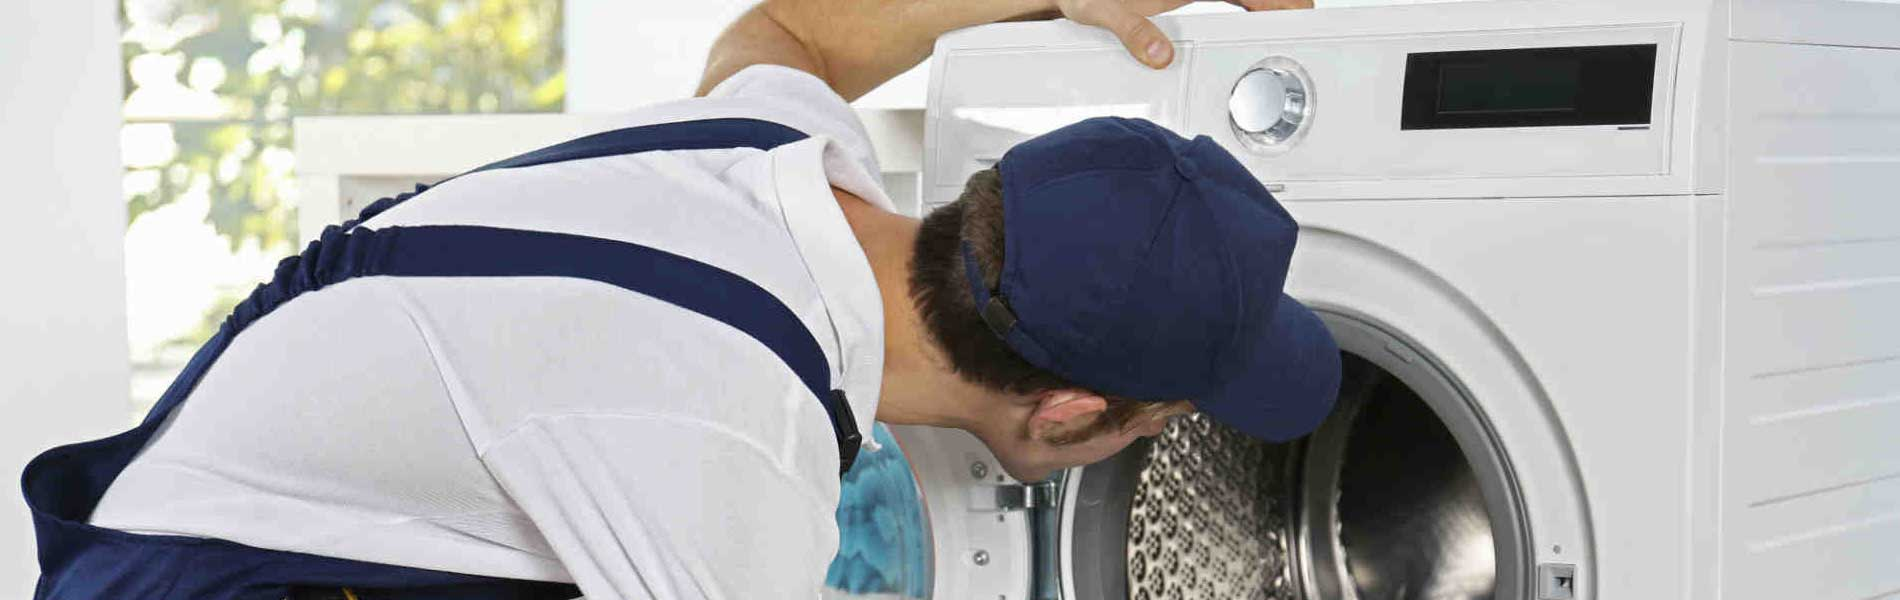 Godrej Washing Machine Service in Teynampet